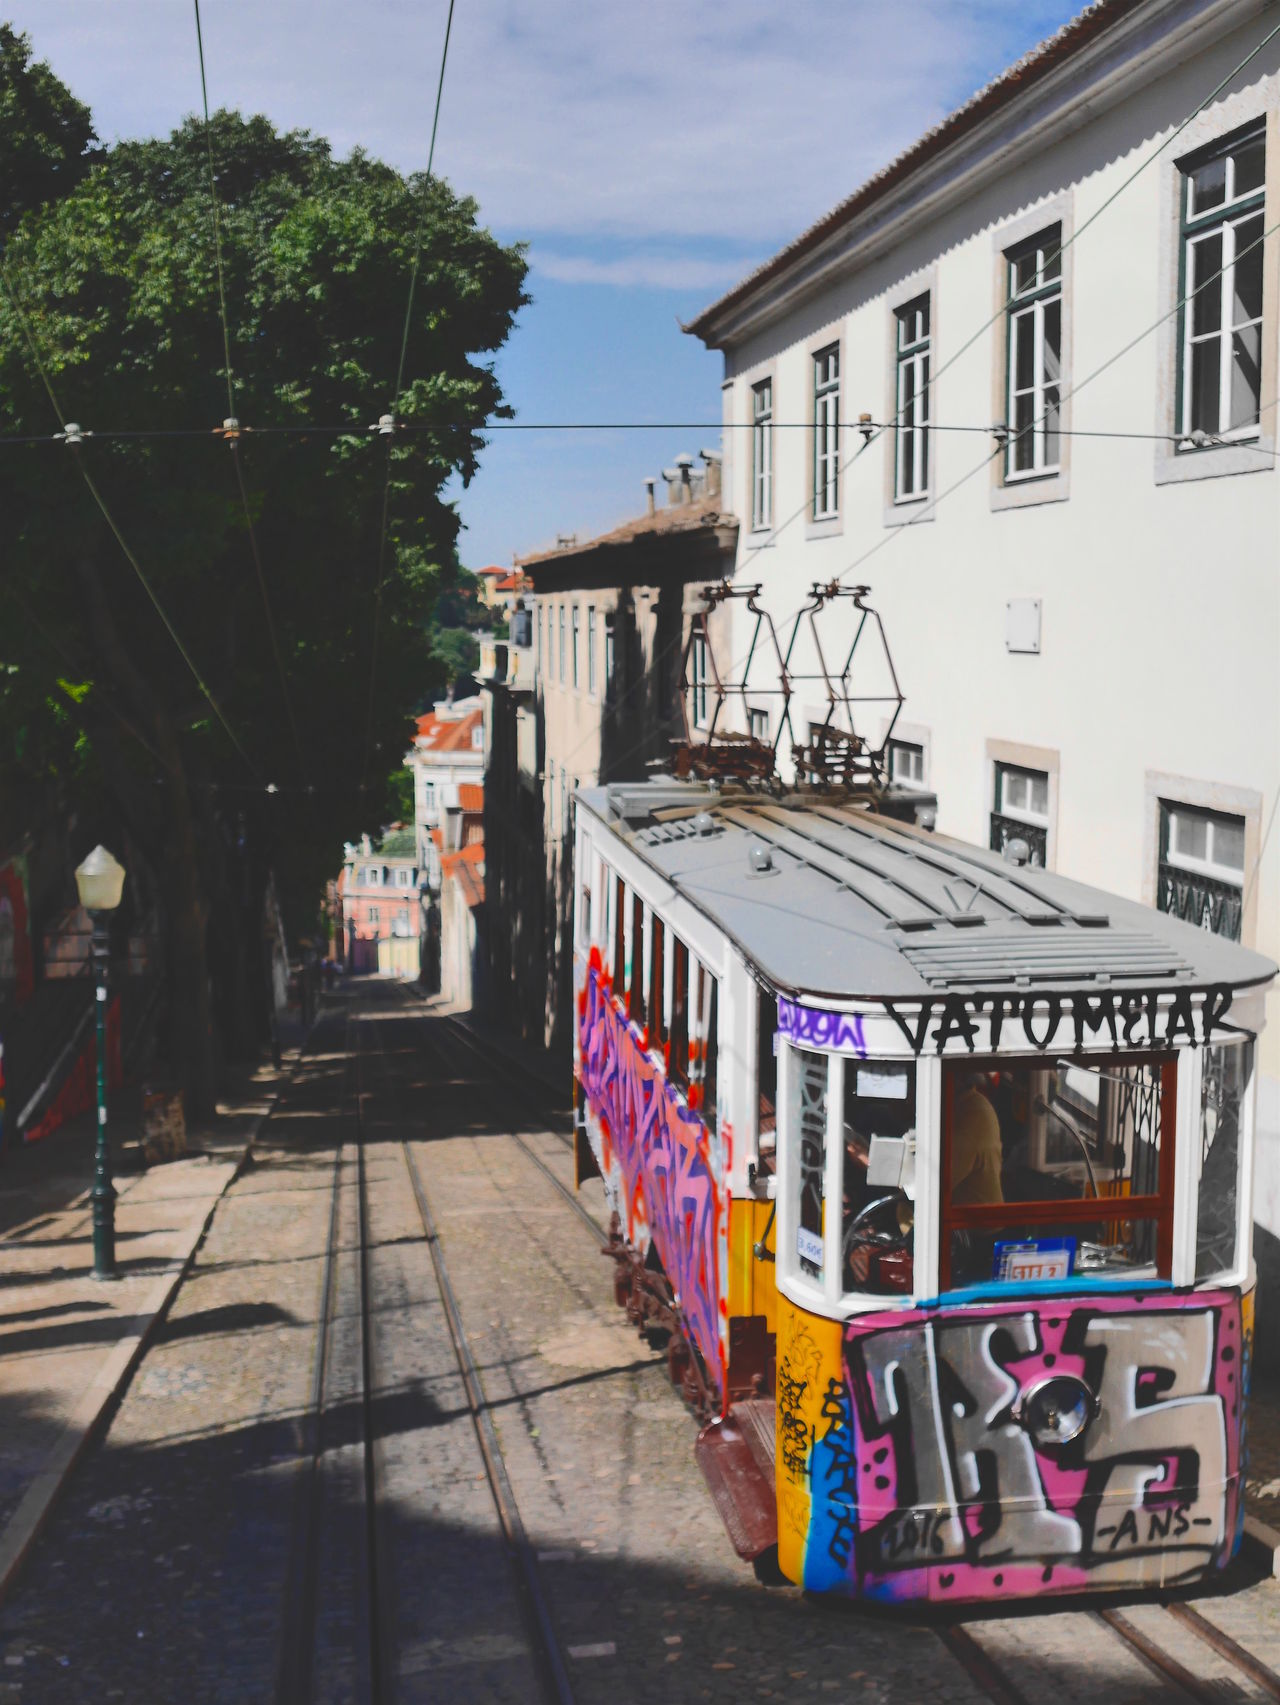 Architecture Building Exterior Built Structure City City City Break Day Graffiti Land Vehicle Lisbon Lisbon - Portugal Lisbon City Life Mode Of Transport No People Outdoors Portugal Portugal Is Beautiful Public Transportation Residential Building Tram Transportation